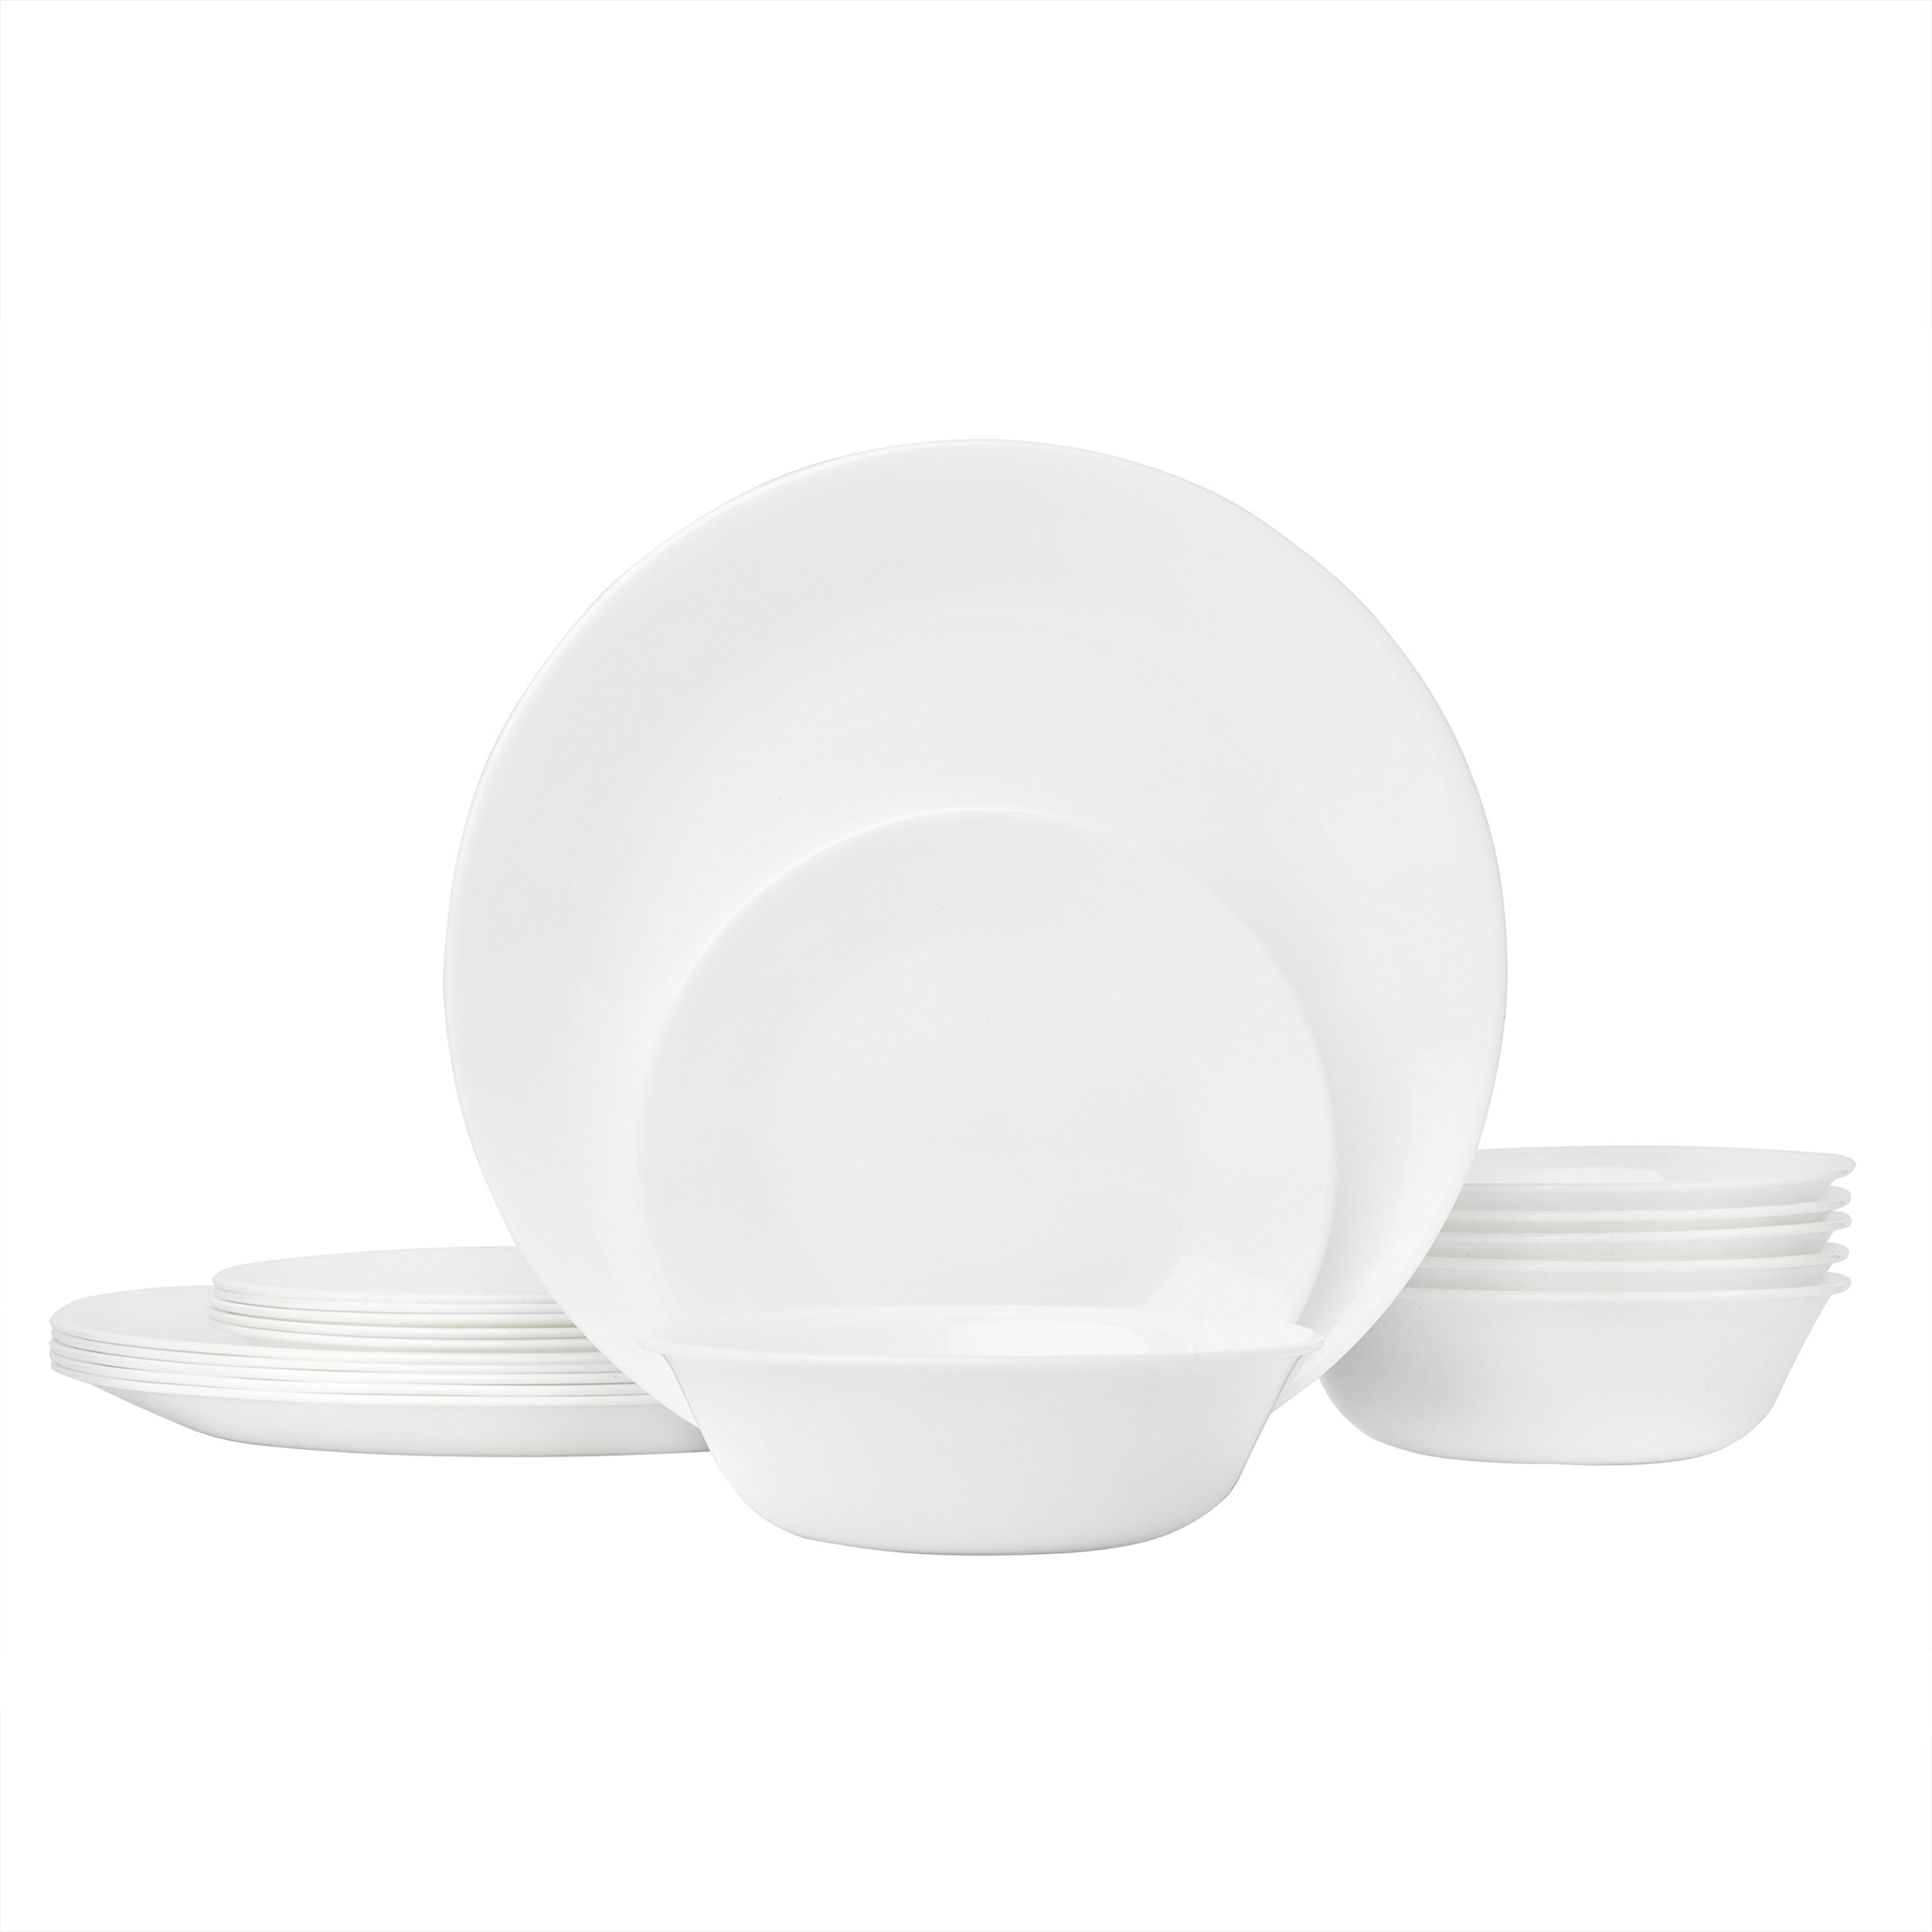 Corelle Winter Frost White Dinnerware Set (18-Piece, Service for 6) by Corelle (Image #1)